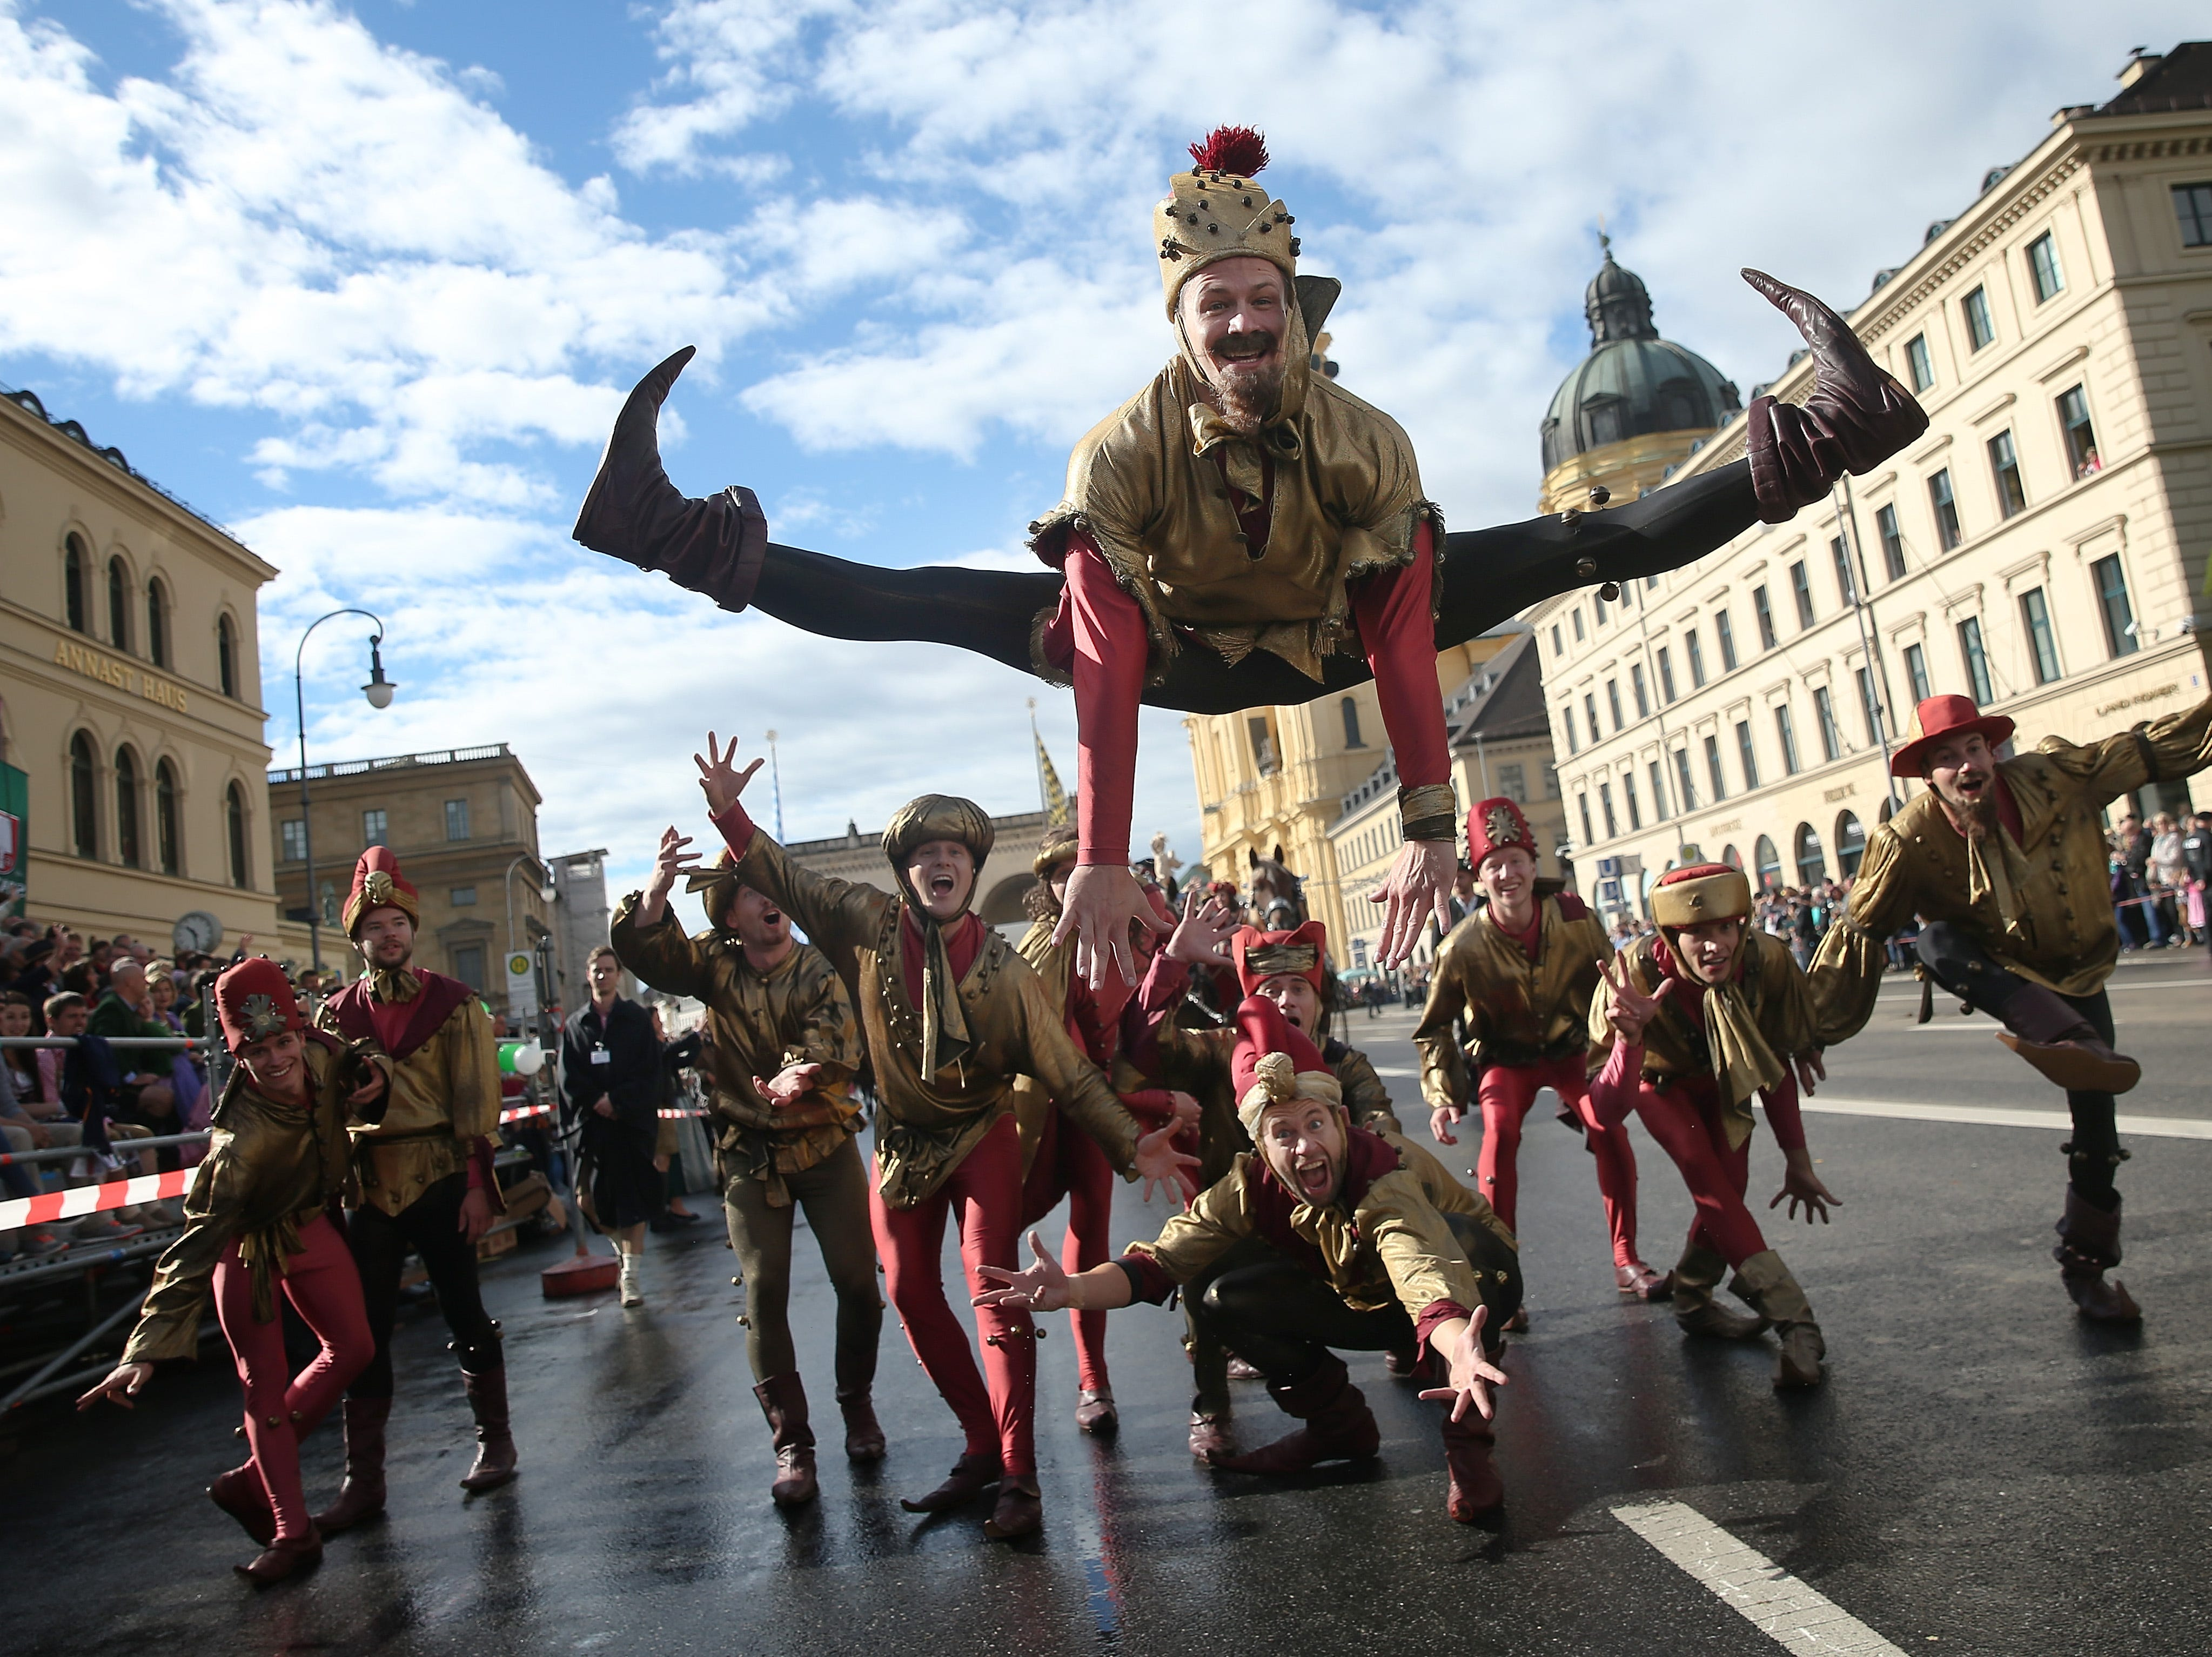 Jokers perform in the Oktoberfest parade of costumes of folk and crafts associations on the second day of the 2018 Oktoberfest beer festival on Sept. 23, 2018 in Munich, Germany.